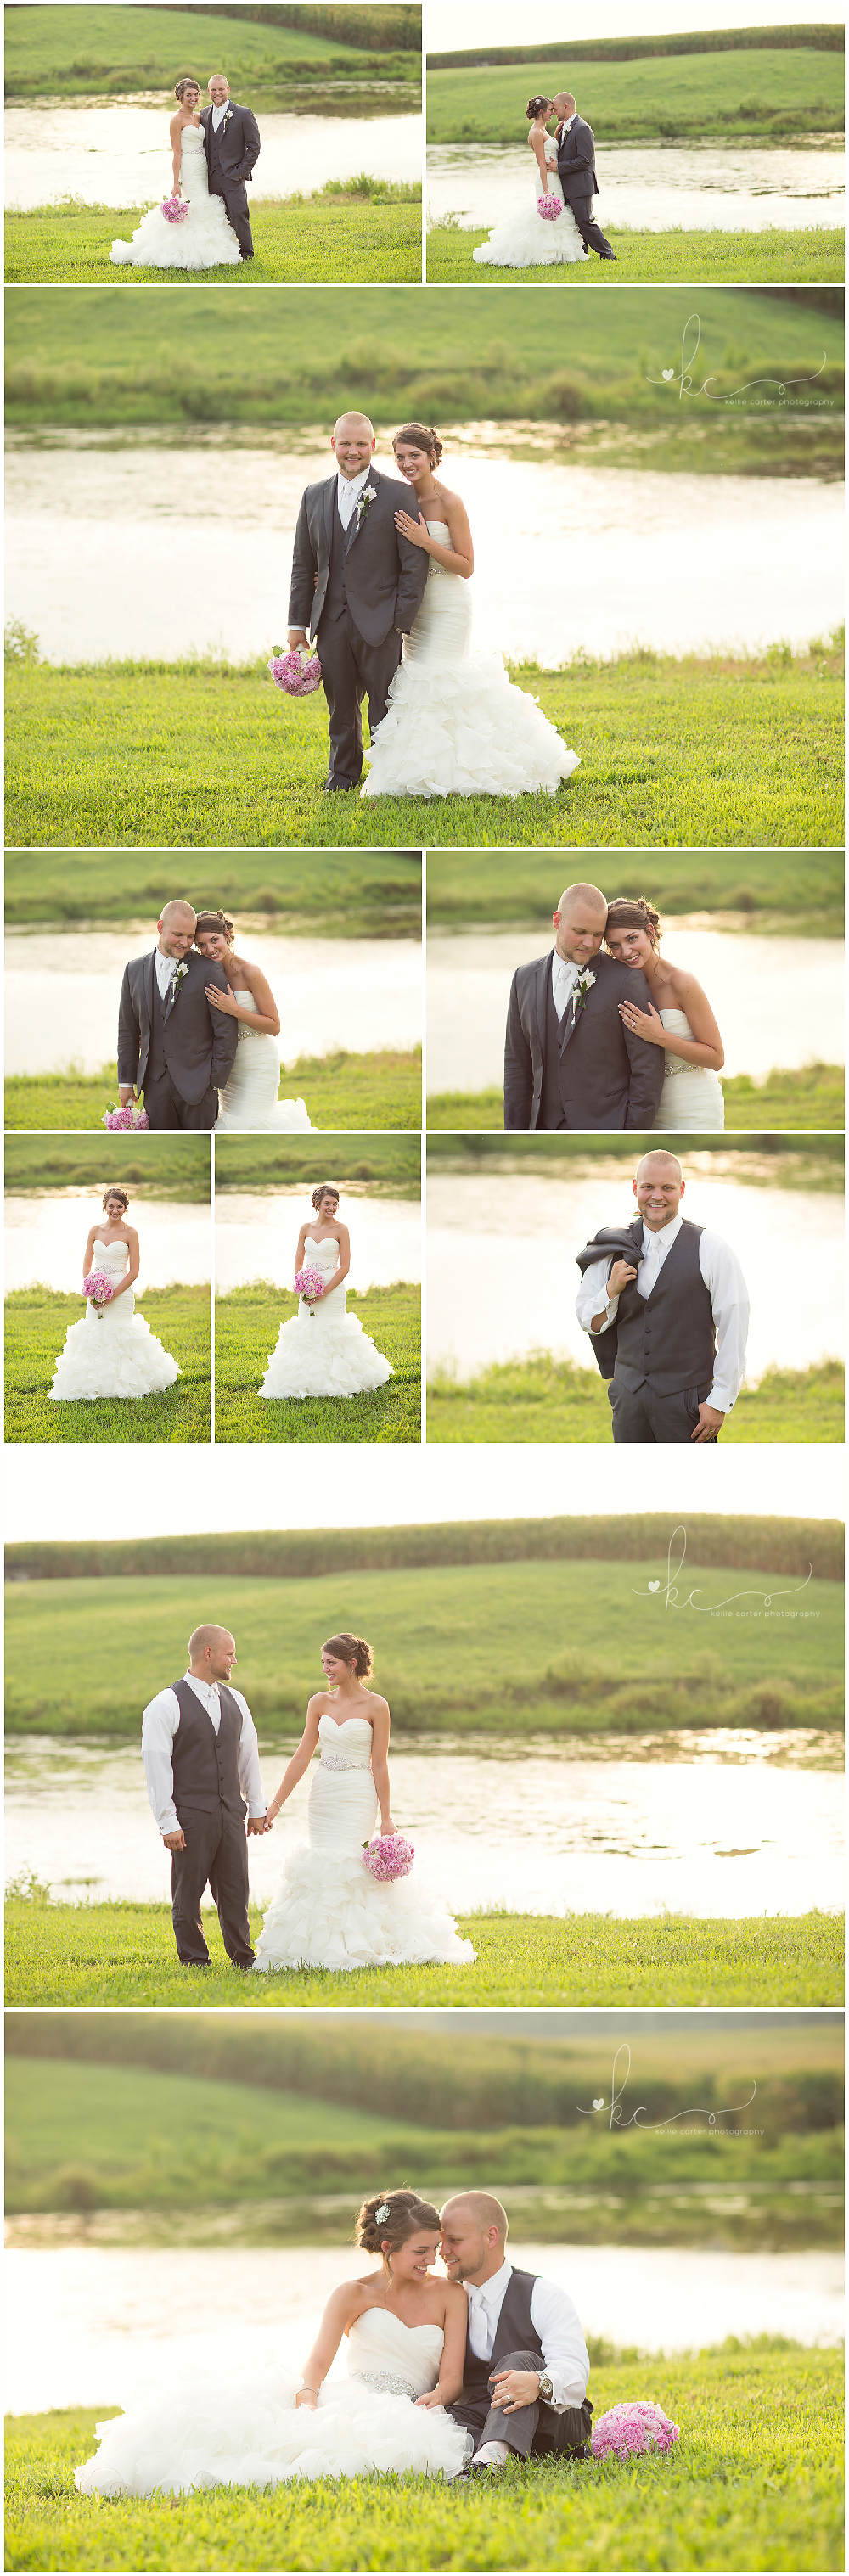 KellieCarterPhotography10 Maggie & Jacob are Married {Monticello KY Wedding Photographer}